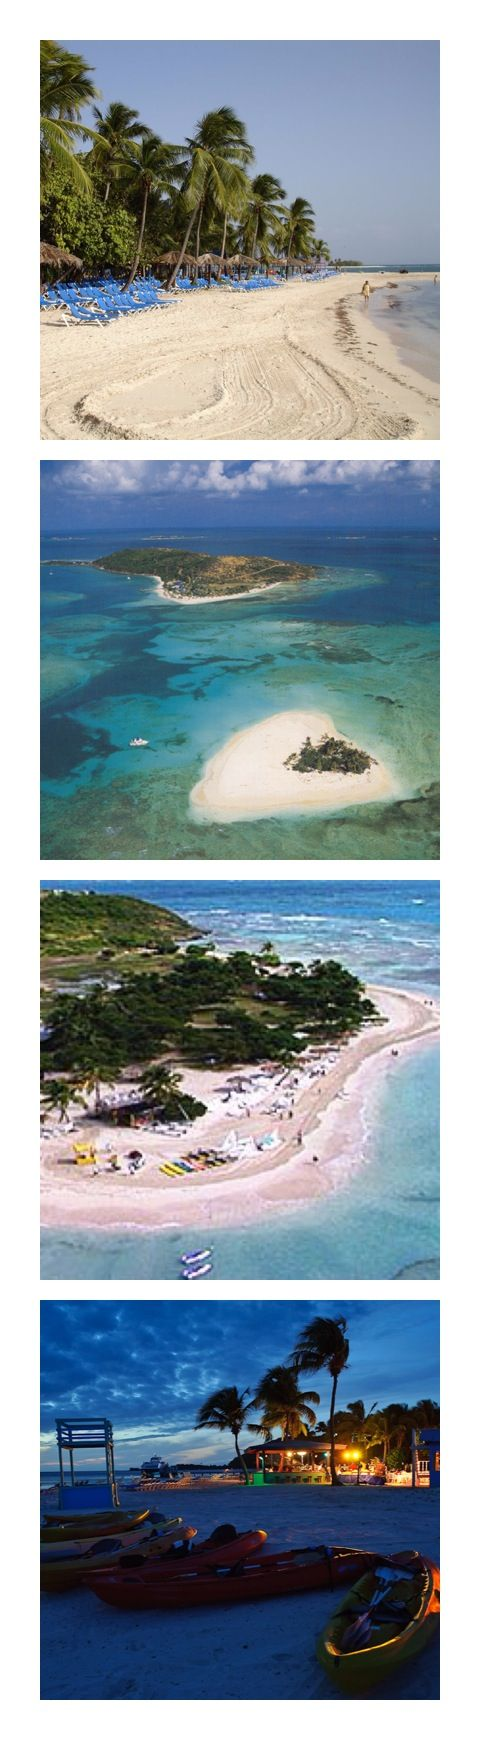 Big Fury Whitsunday Full Day Tours Amp Activities From Airlie Beach - Fajardo